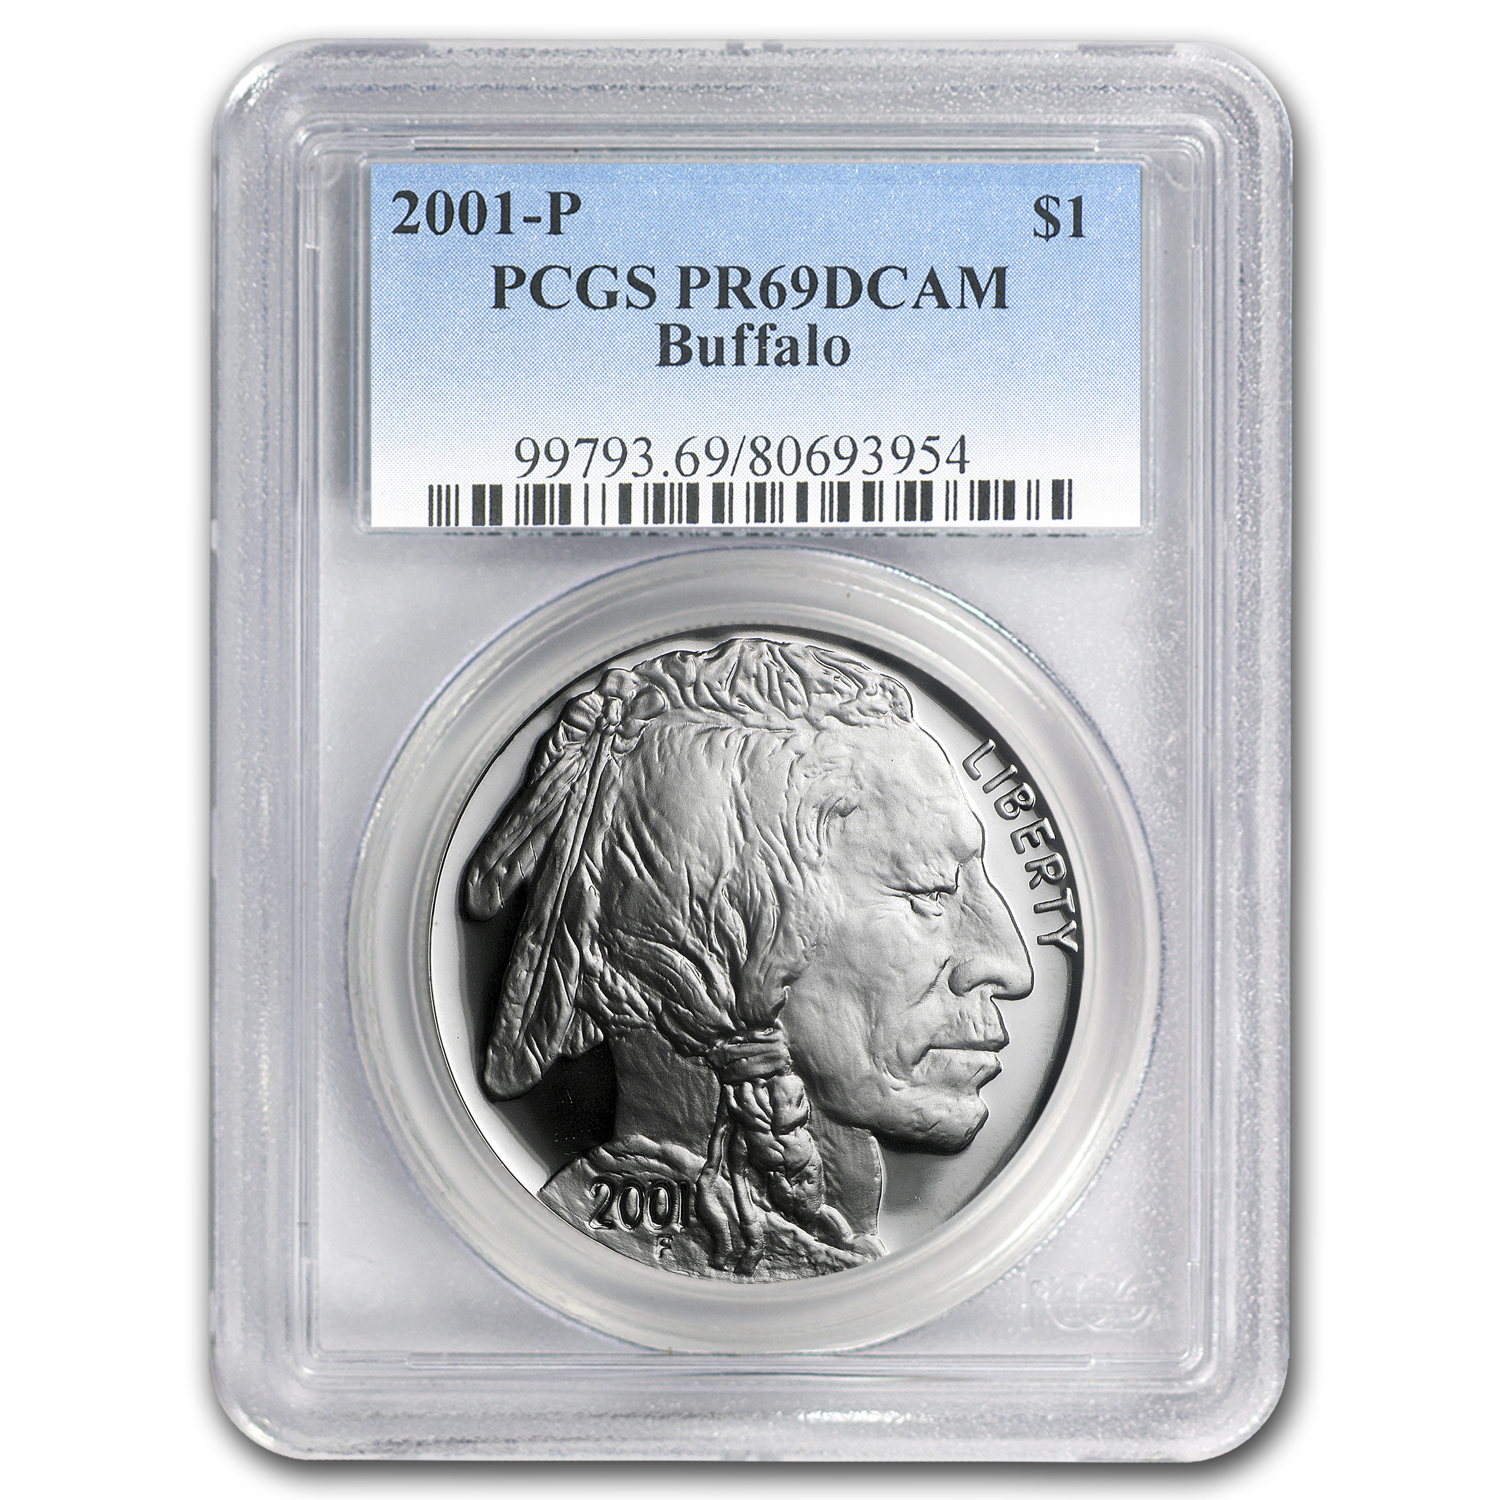 2001-P Buffalo $1 PR-69 PCGS DUPLICATE SKU of 98968